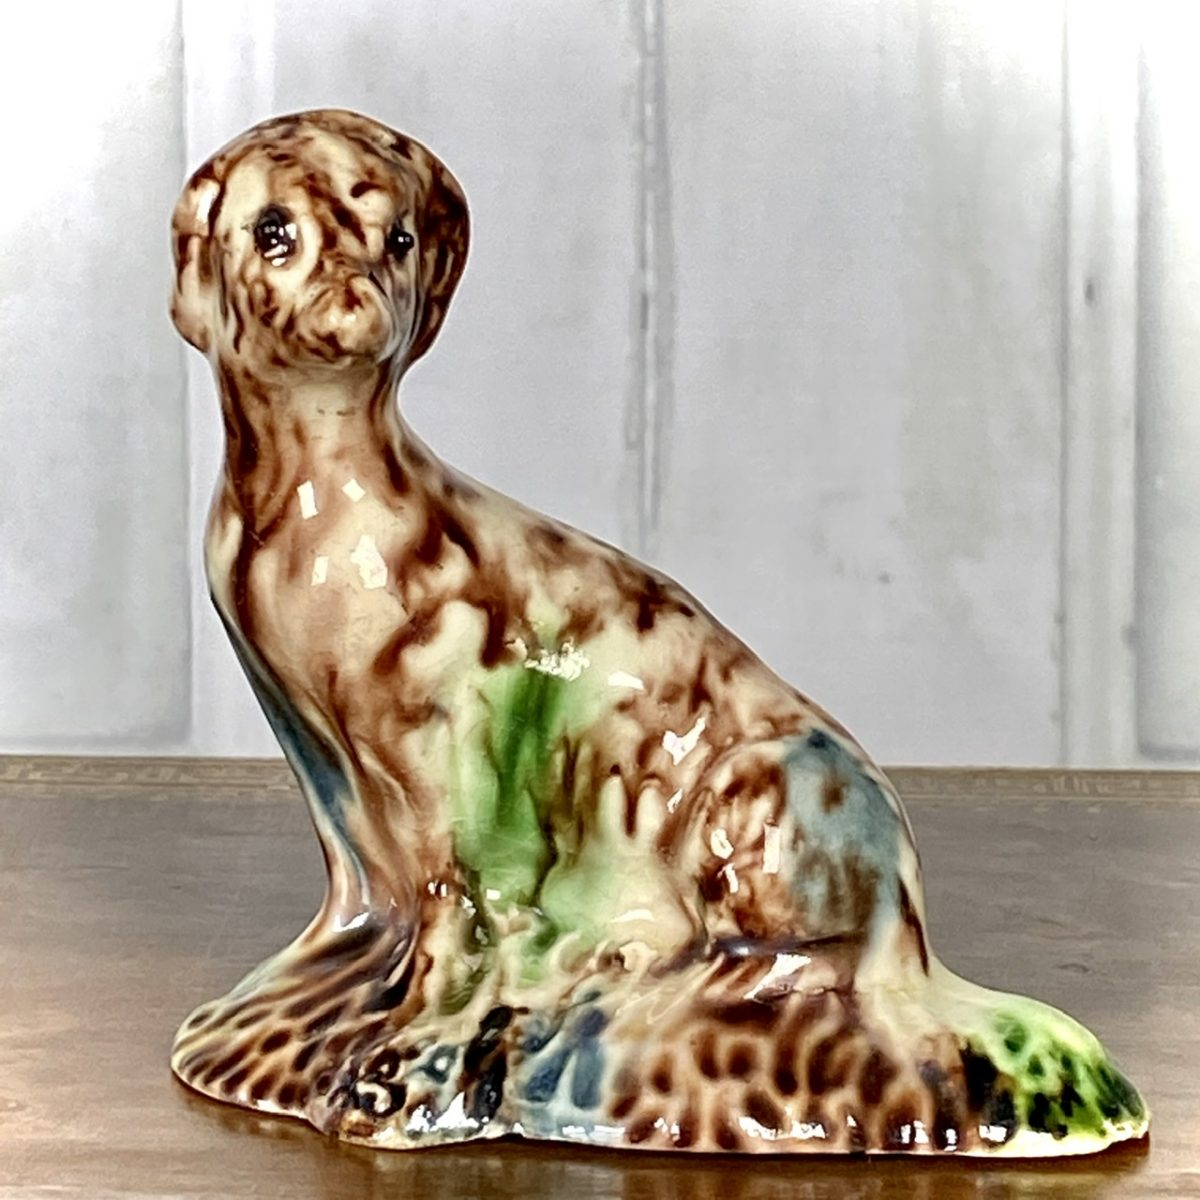 C18th Staffordshire Pottery Model of a Dog, Whieldon Type